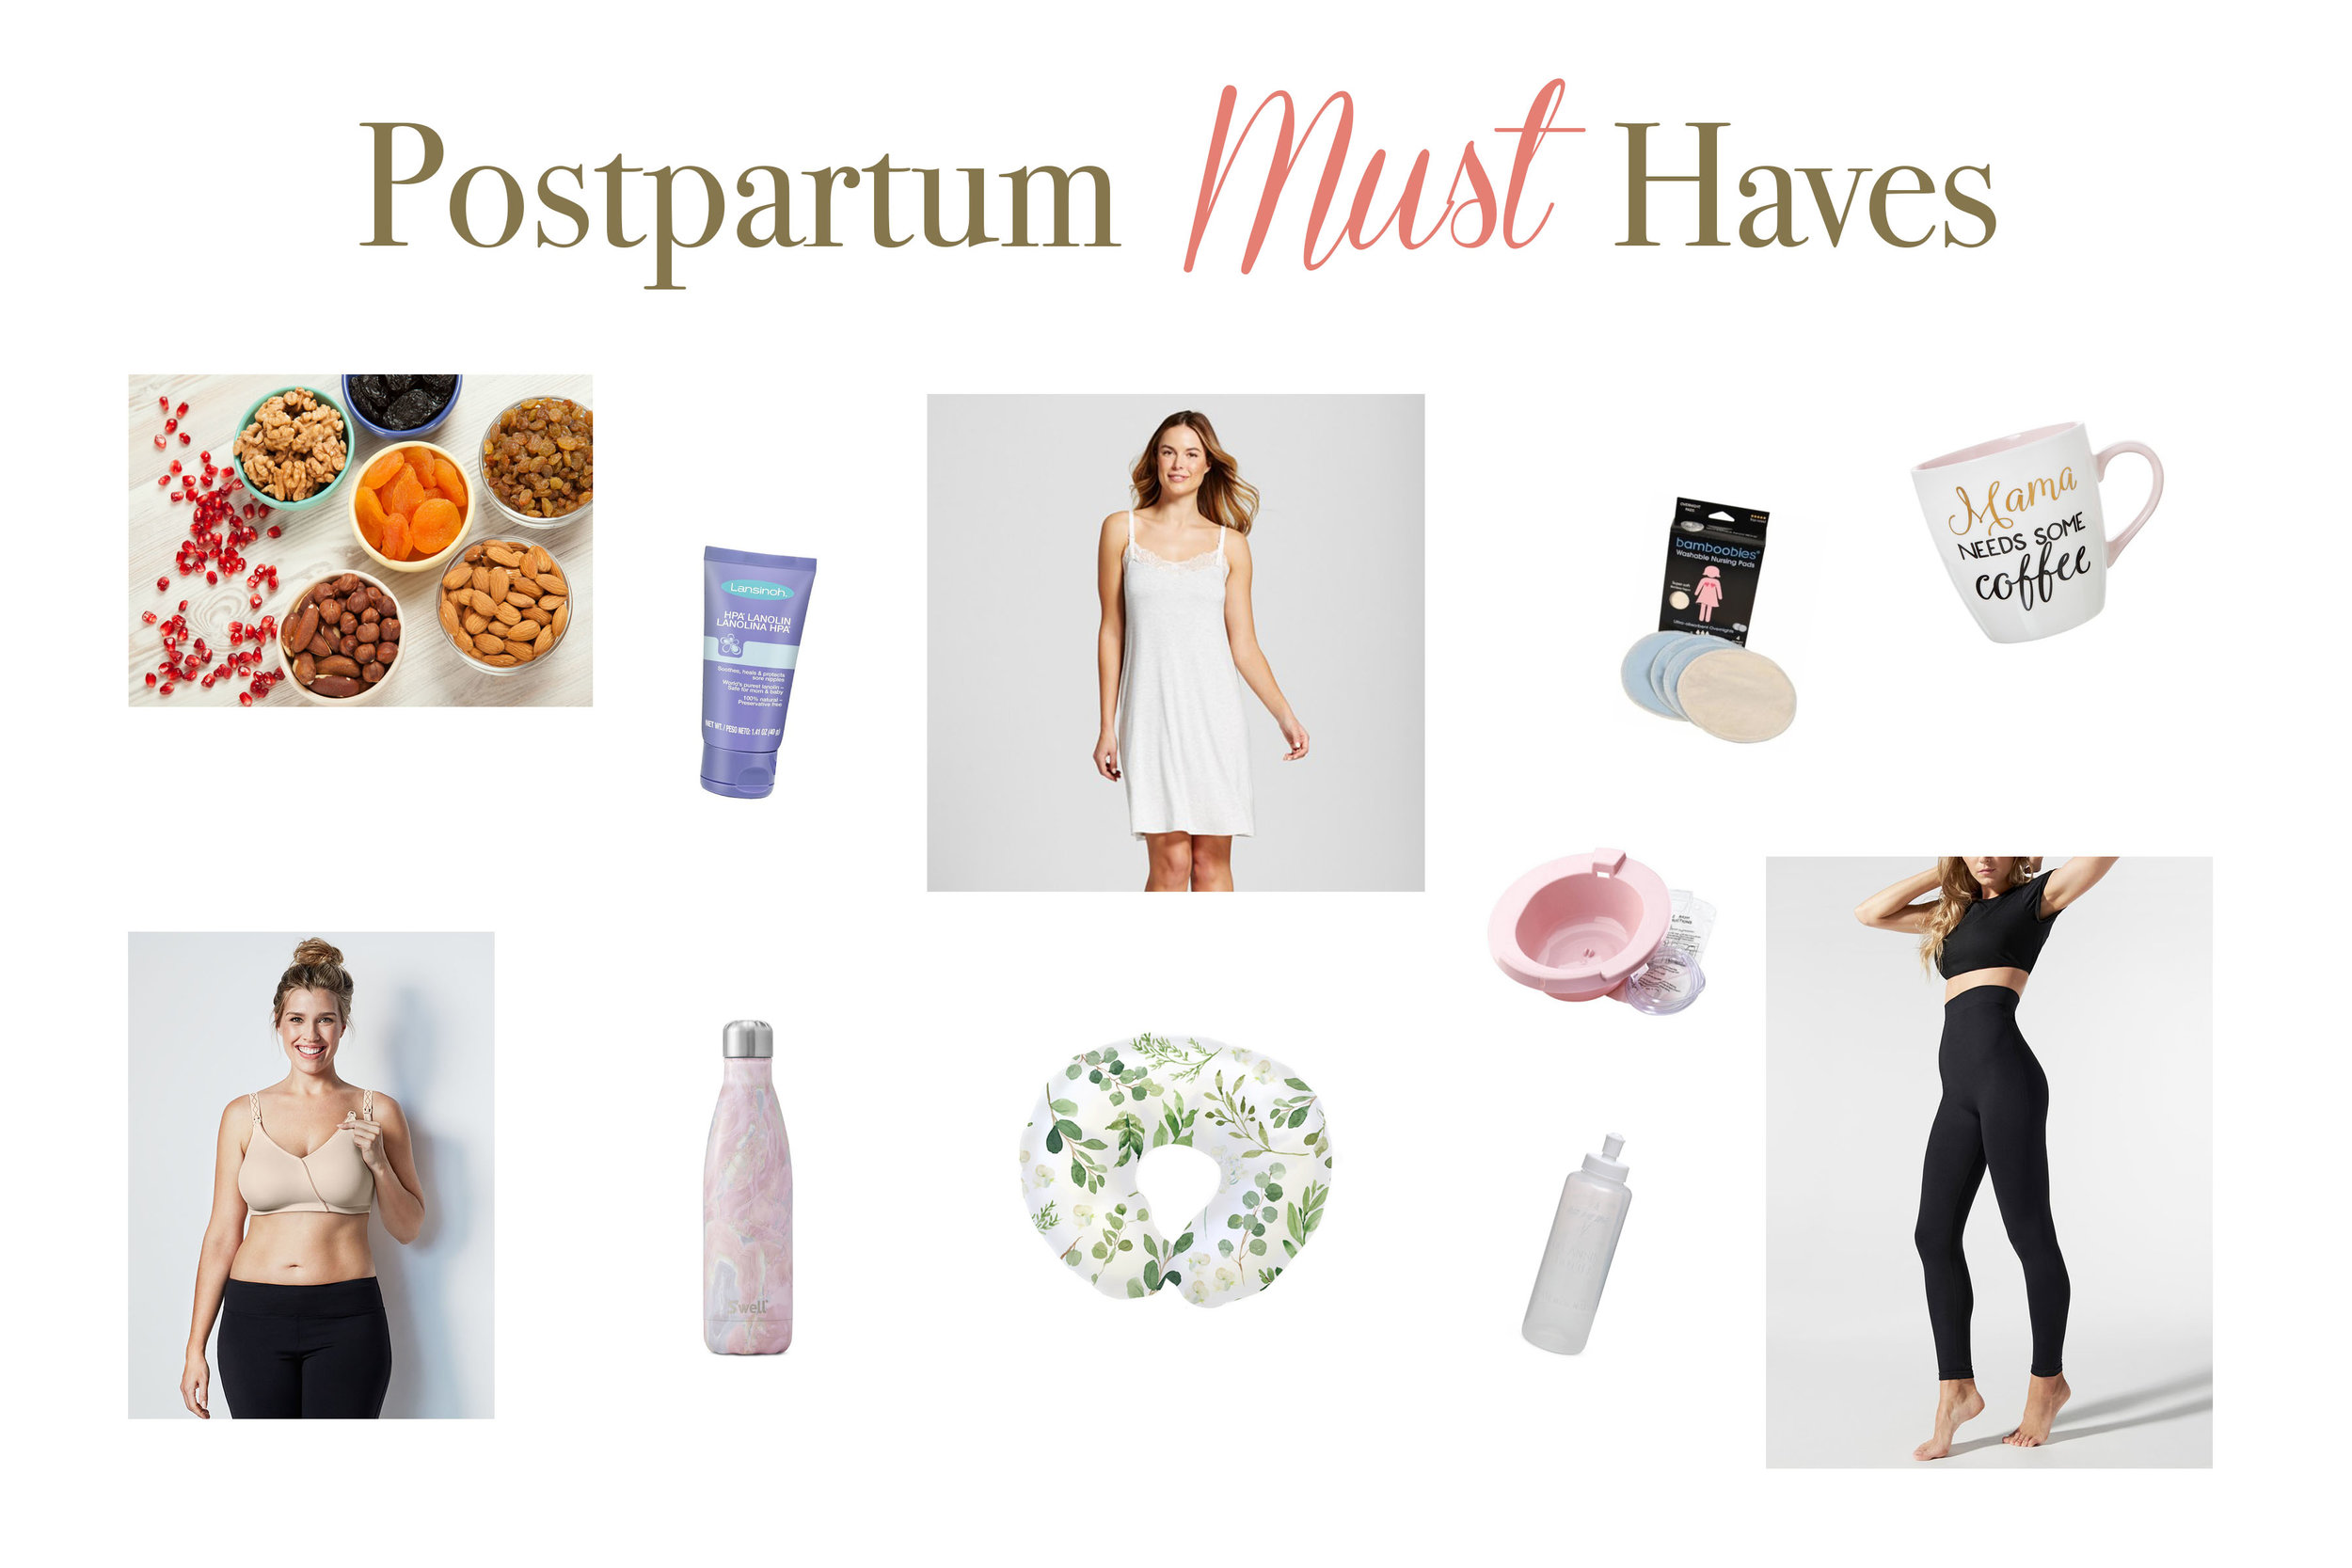 Postpartum Must Haves.jpg